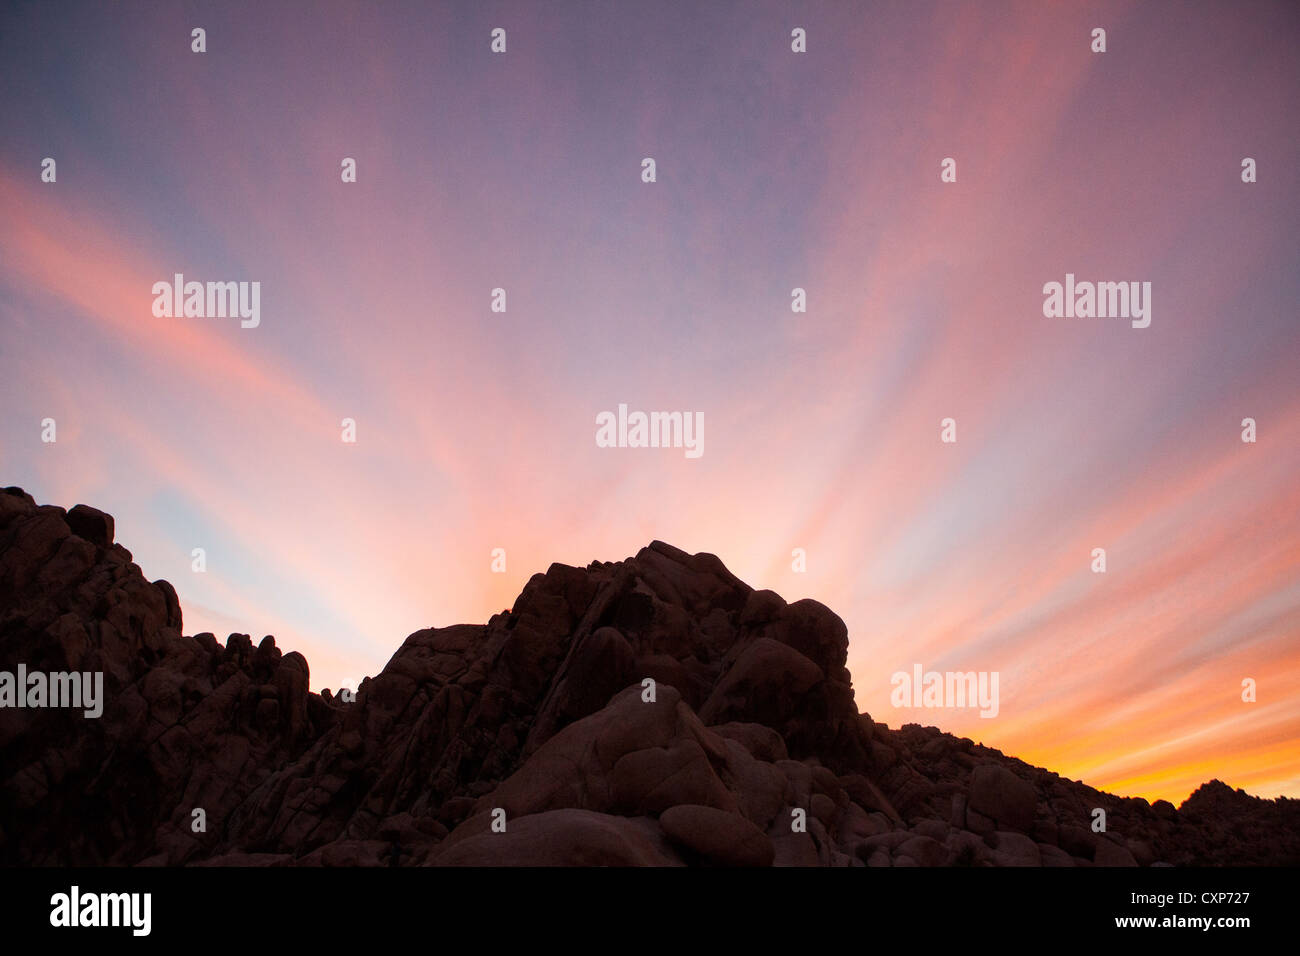 dramatic sunset in the desert with silhouette of rocks and mountains. - Stock Image